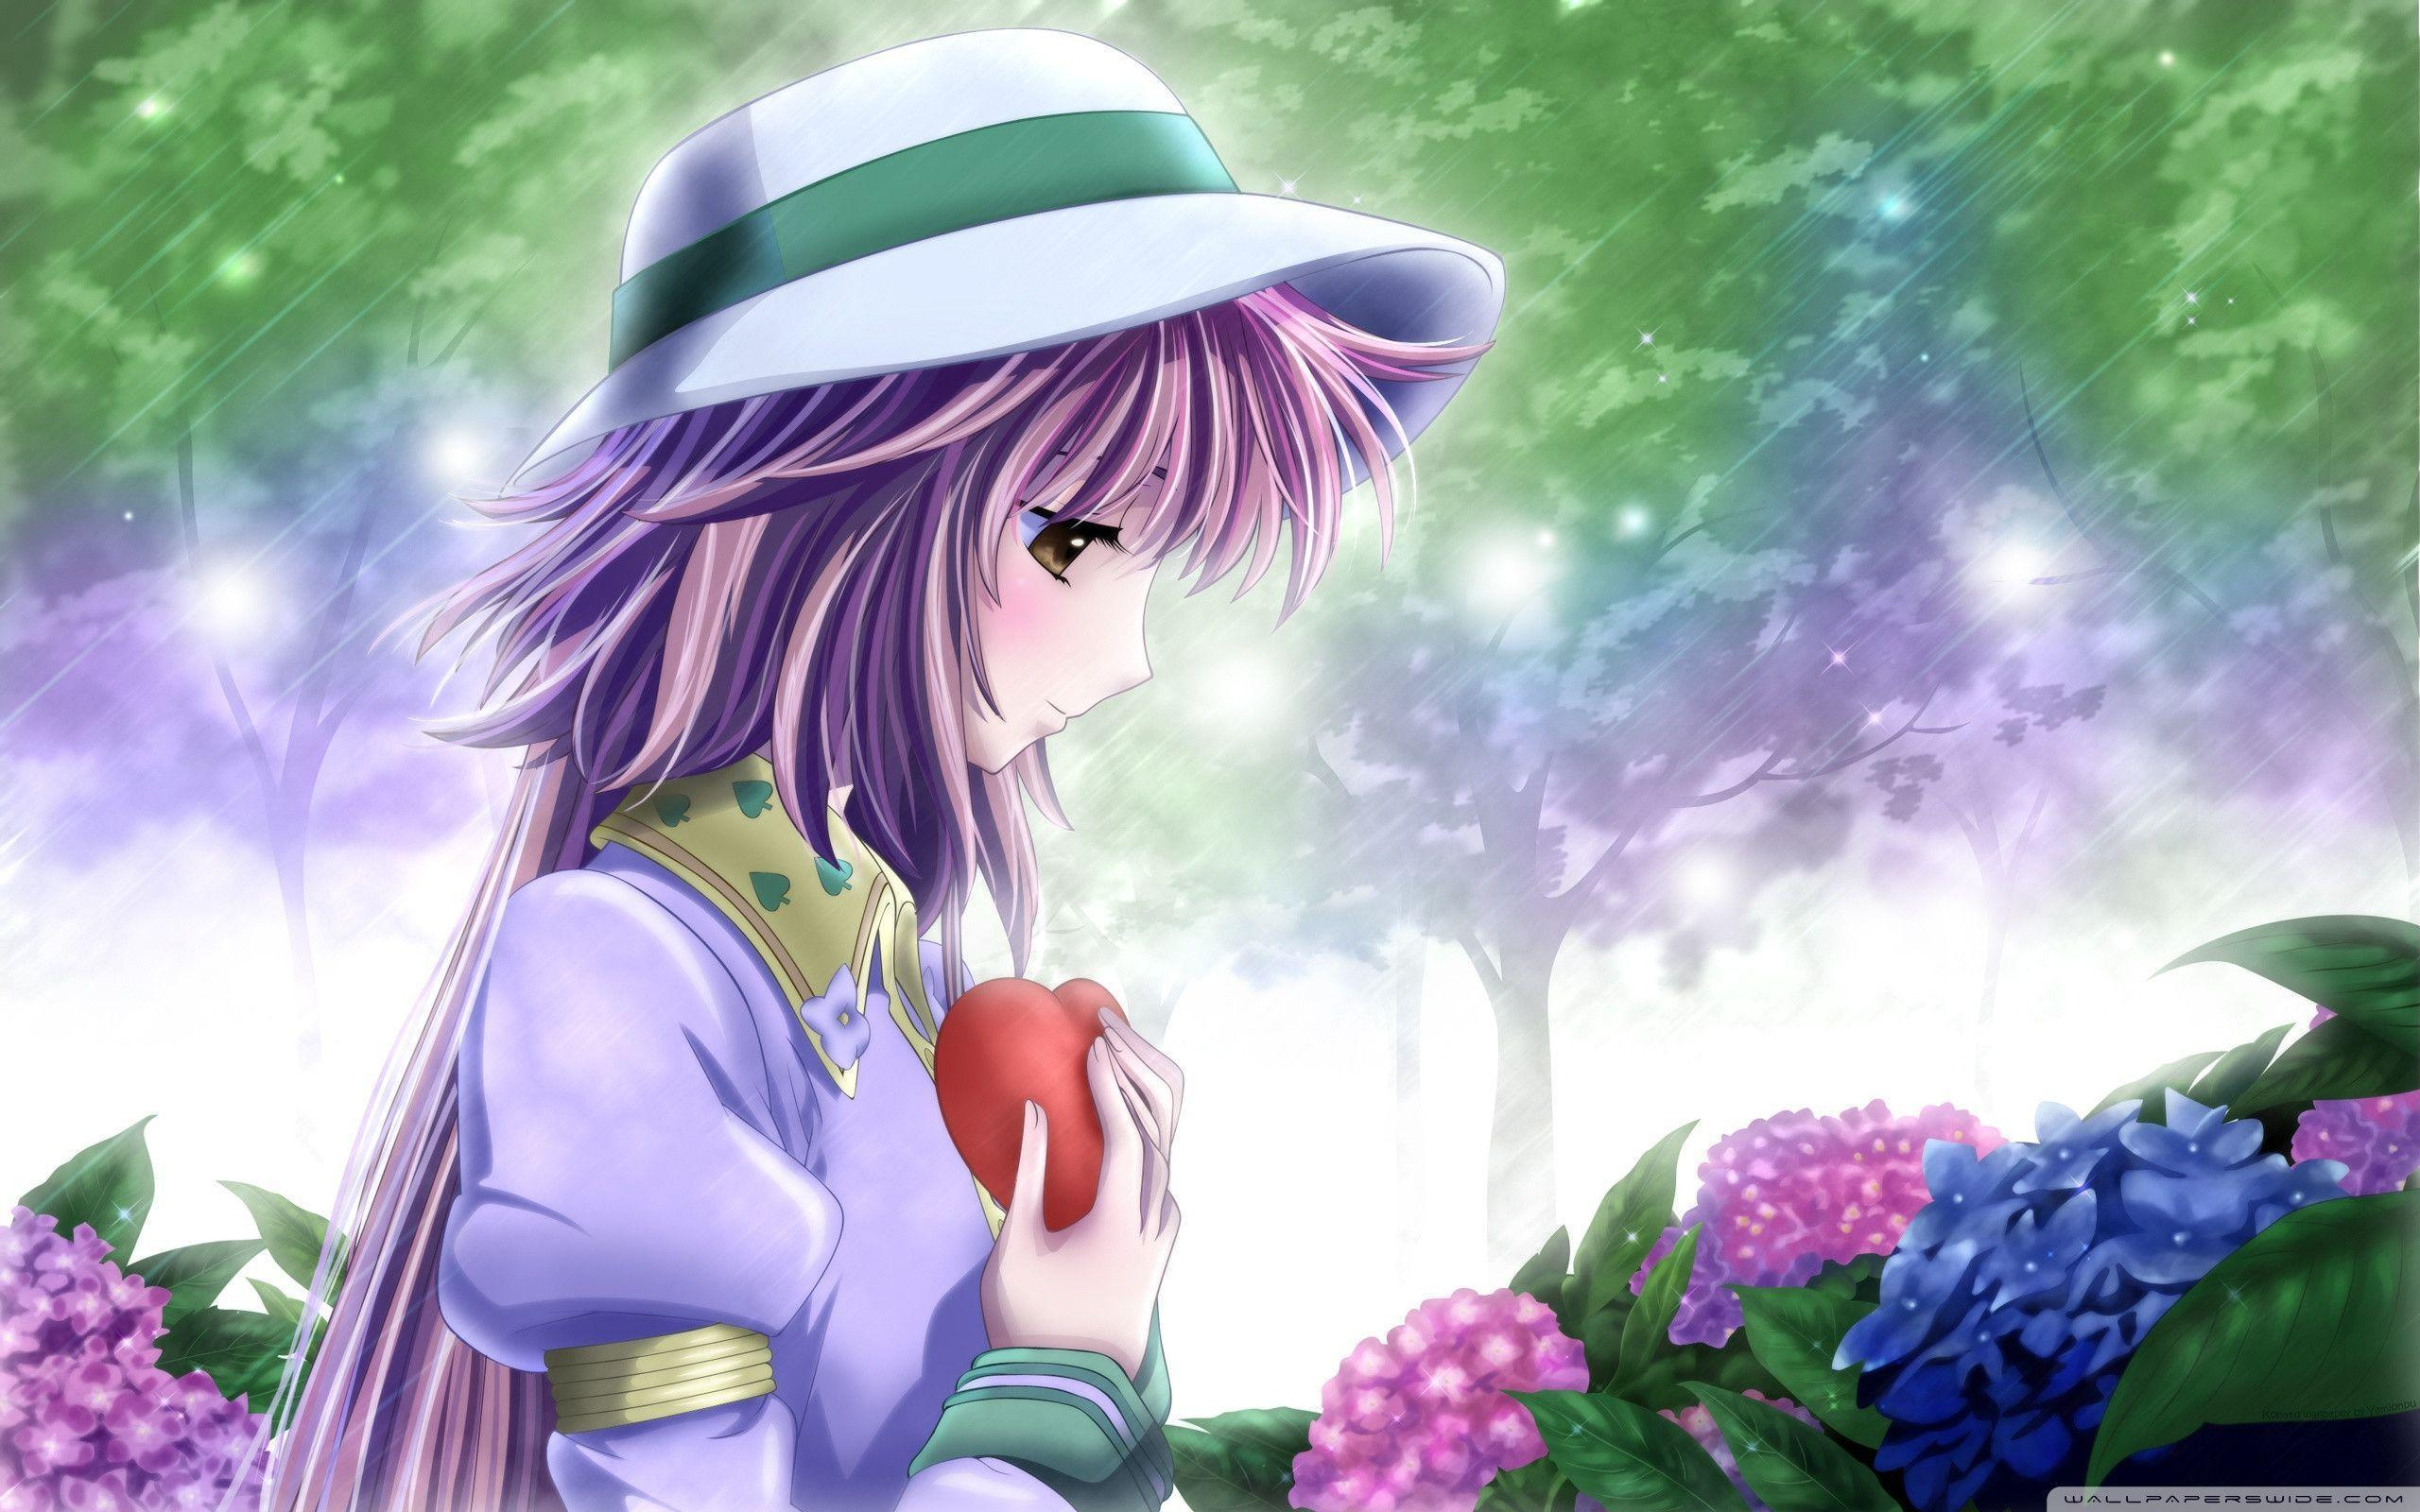 Anime wallpaper download free in love wallpapers